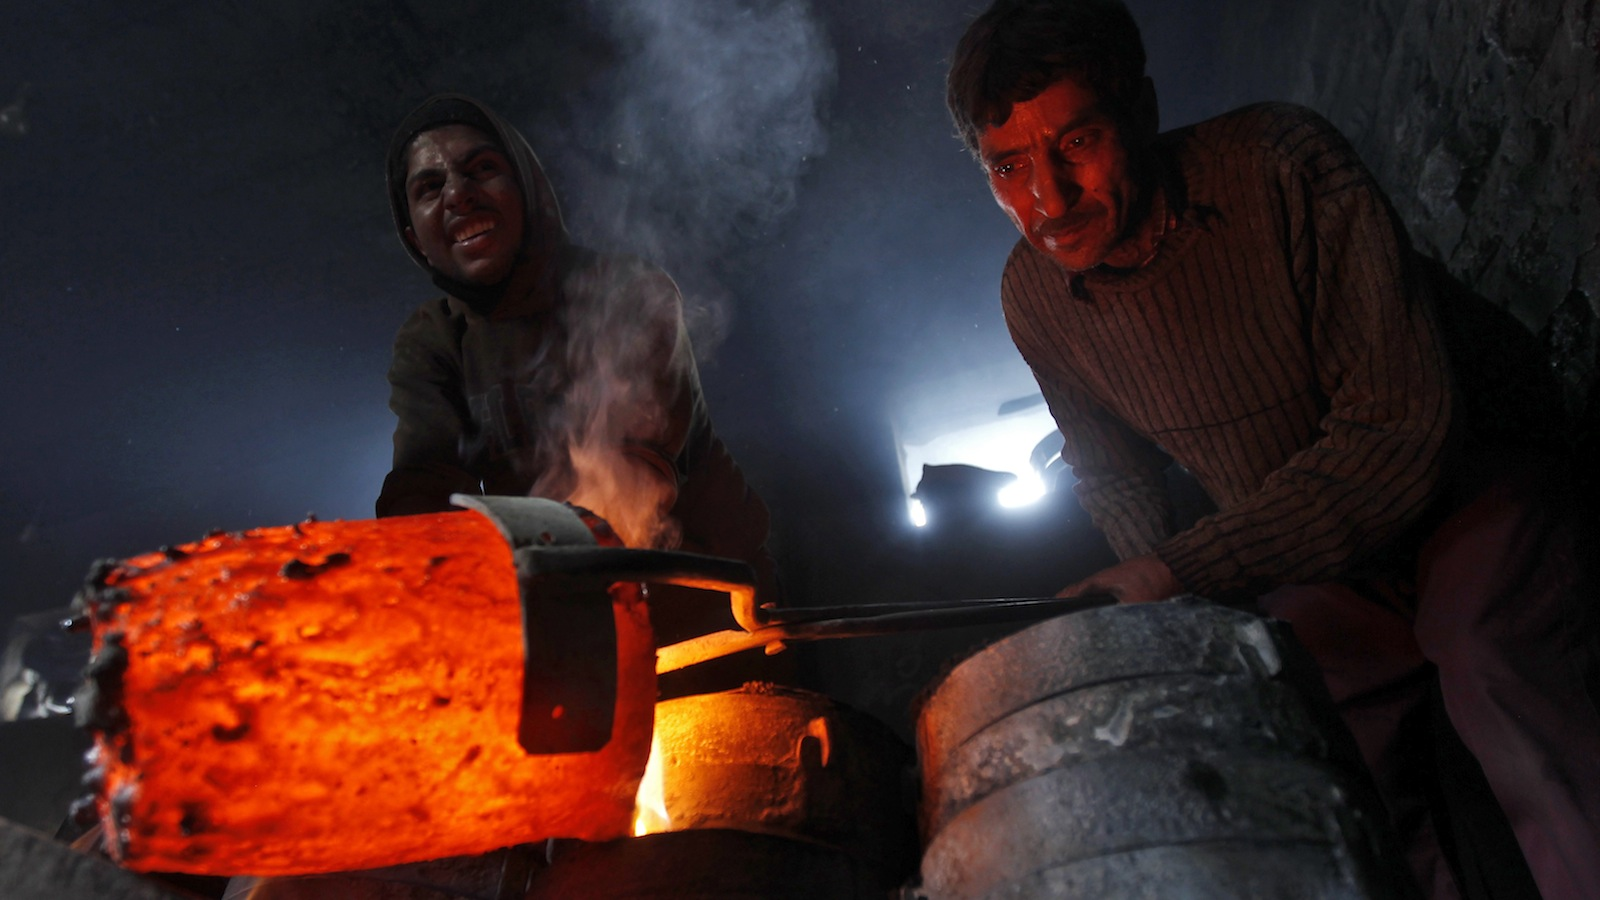 Workers pour melted copper in a mould to make utensils and accessories inside a workshop in Srinagar March 27, 2014. REUTERS/Danish Ismail